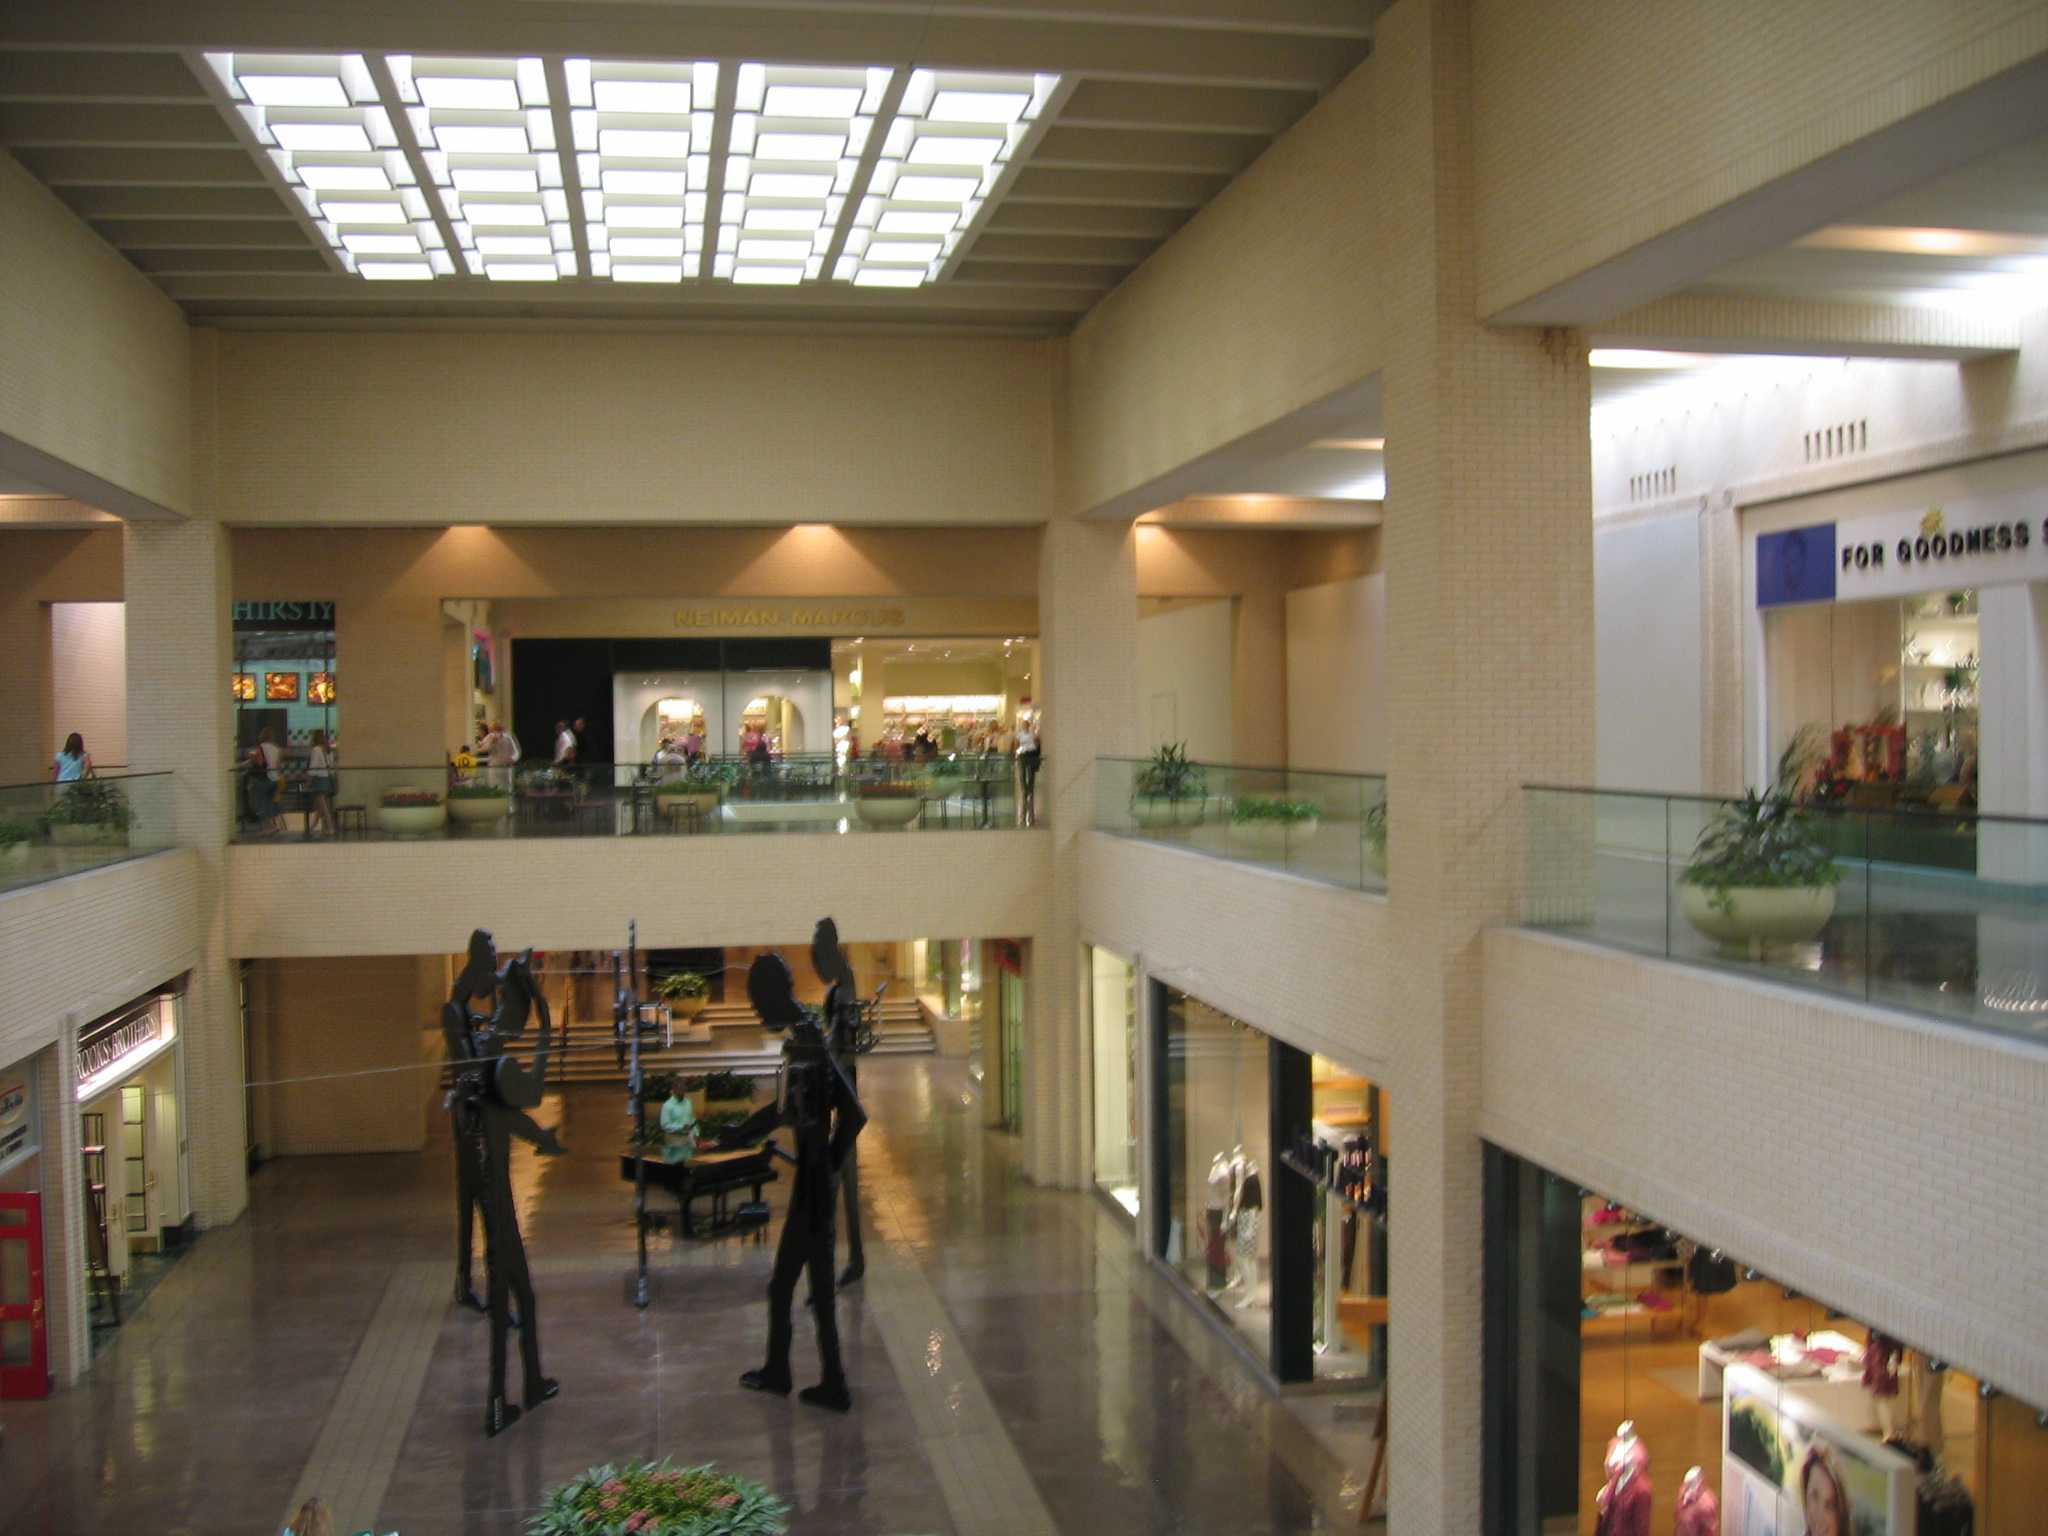 northpark-center-06.JPG